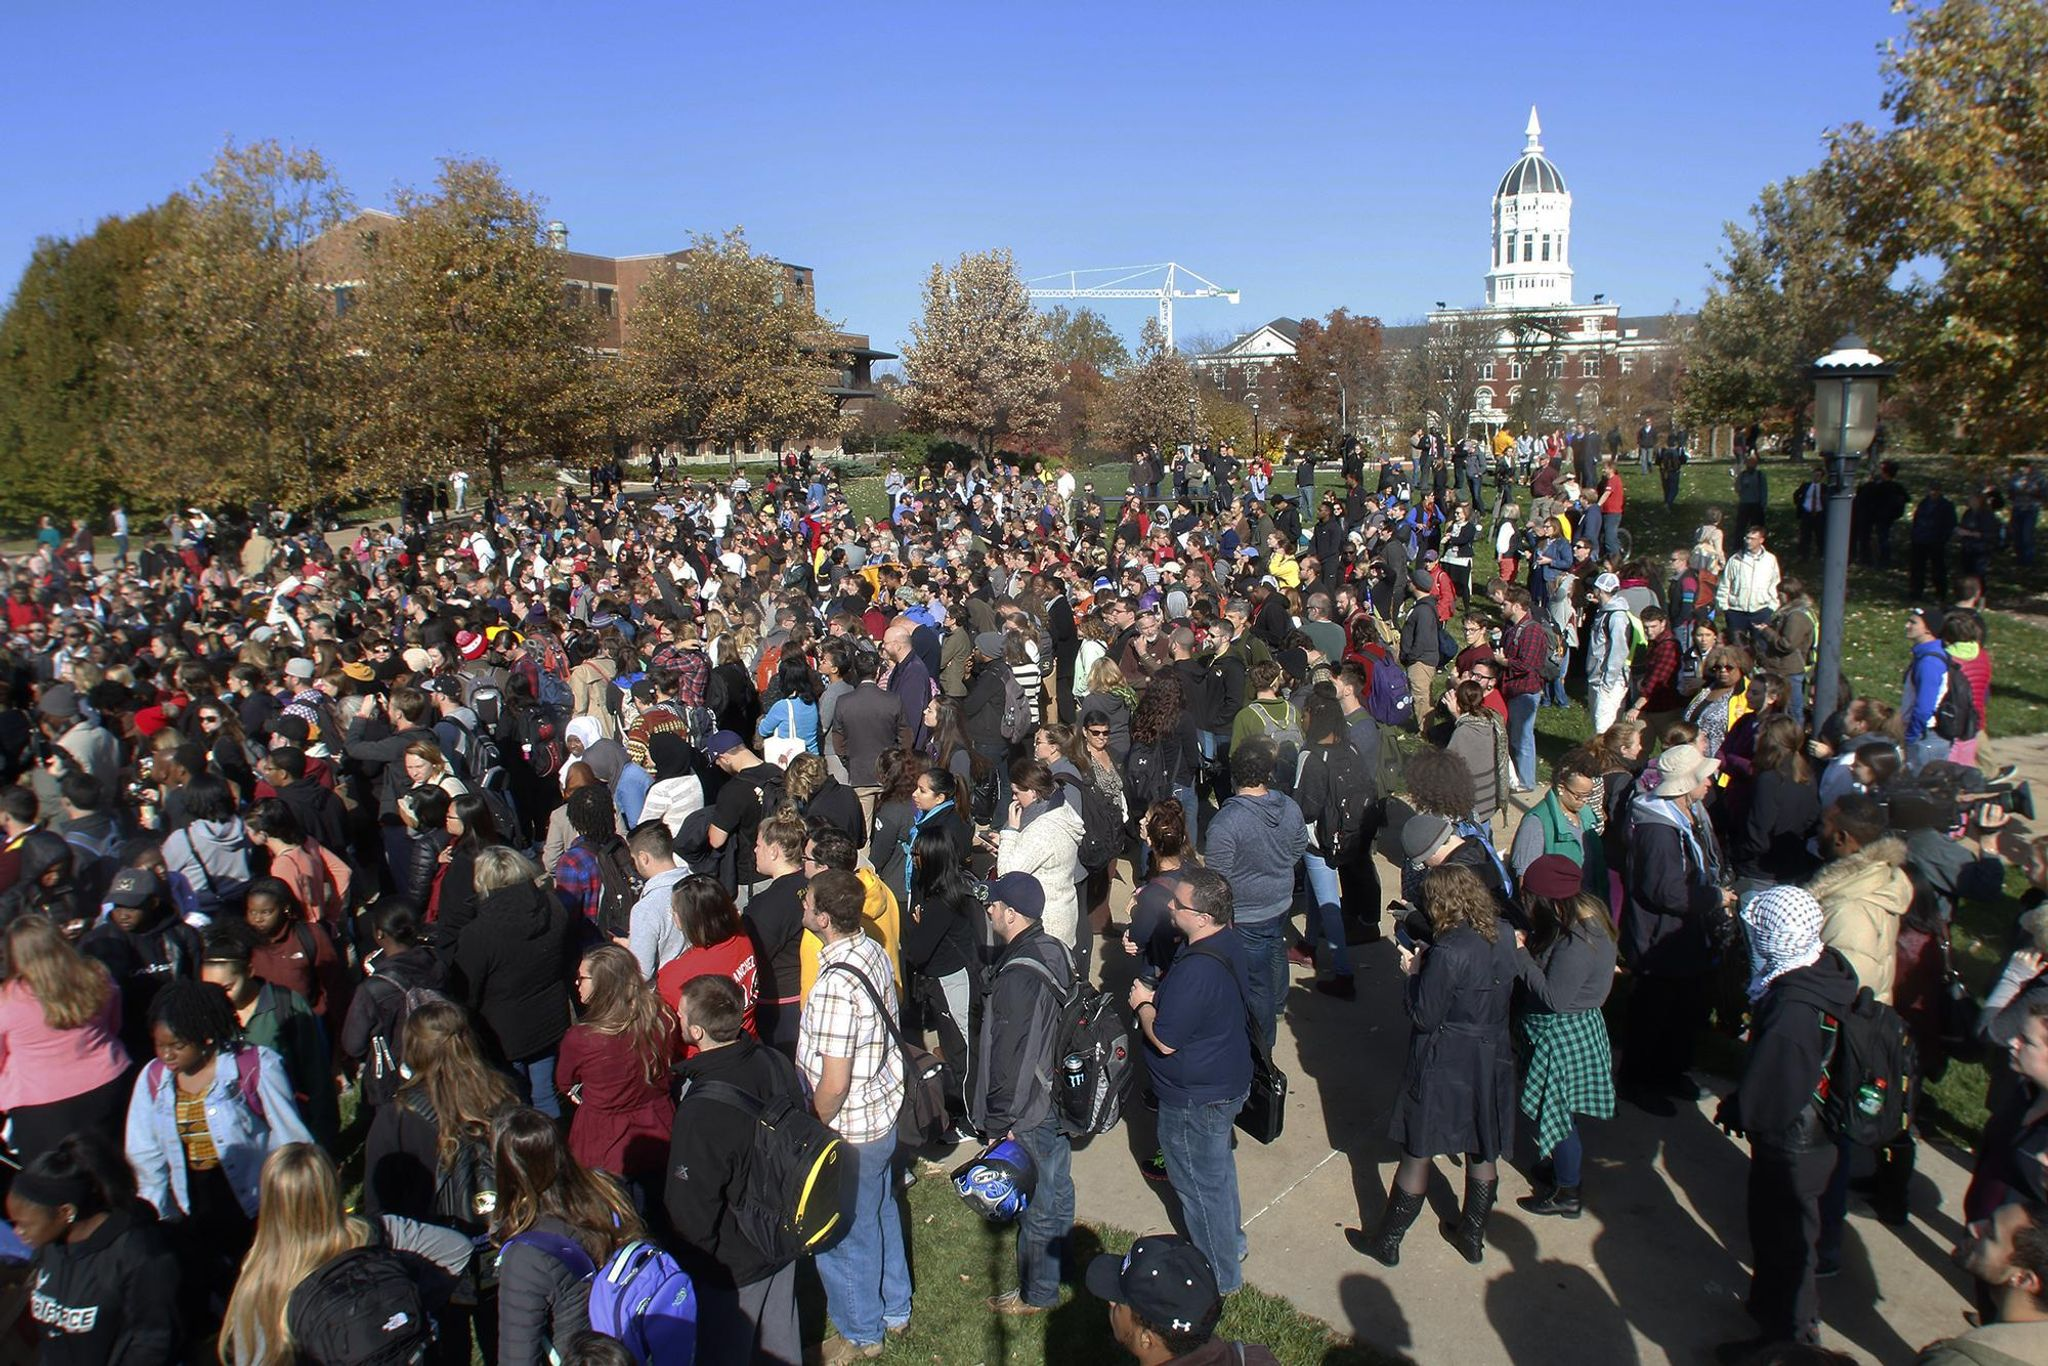 Howard University increases security after racist threat from alleged U. of Missouri student